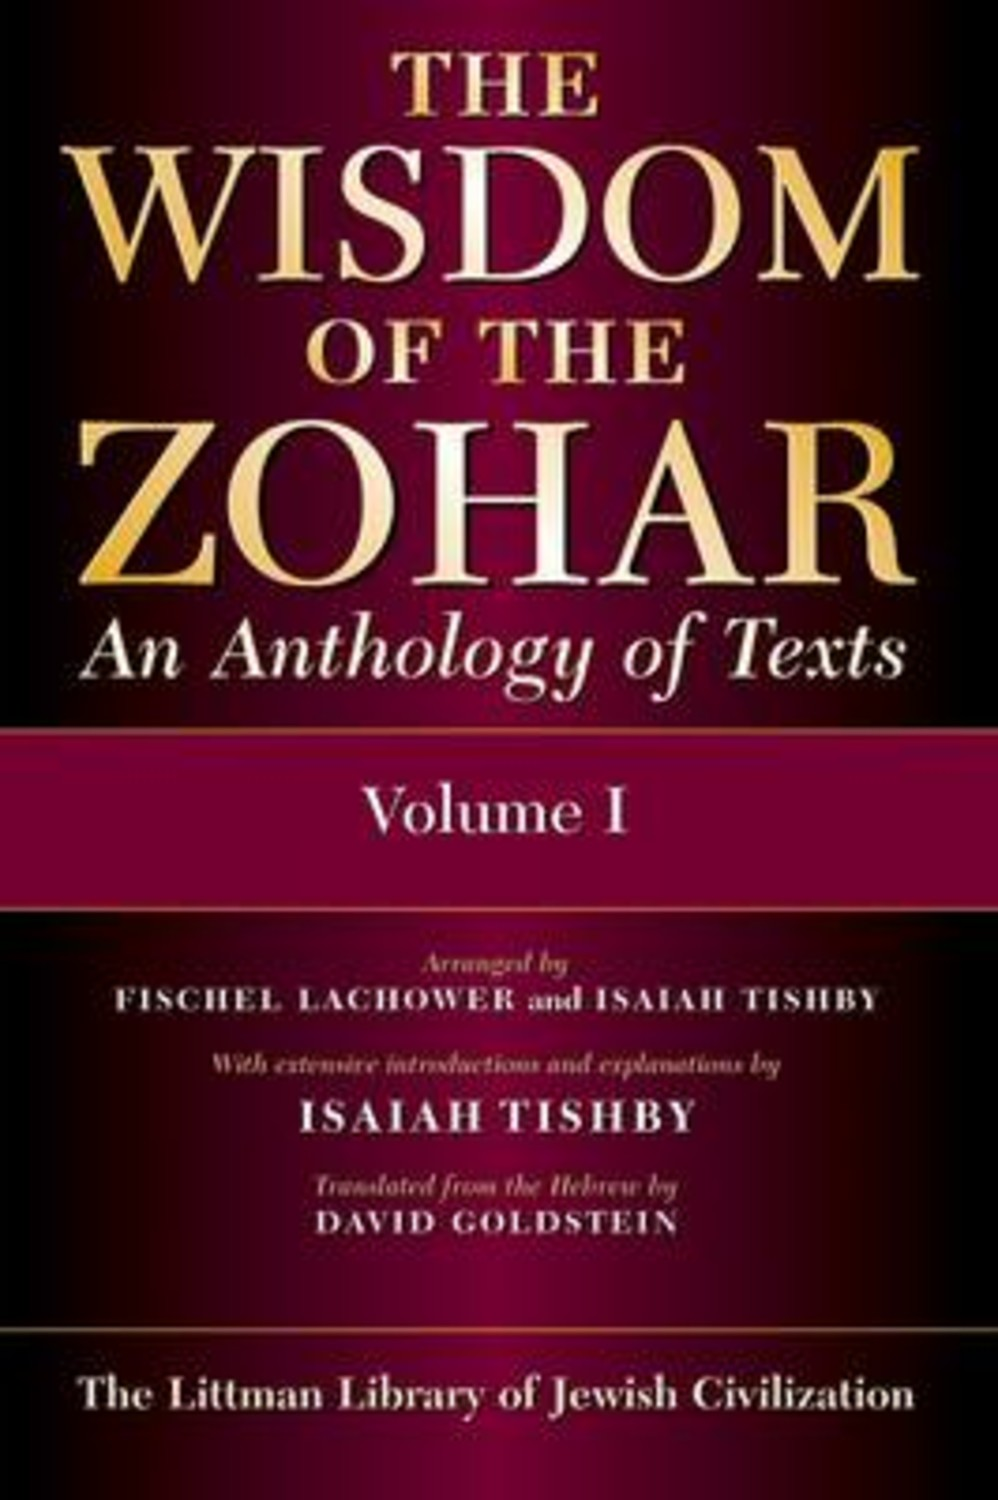 The Wisdom of the Zohar